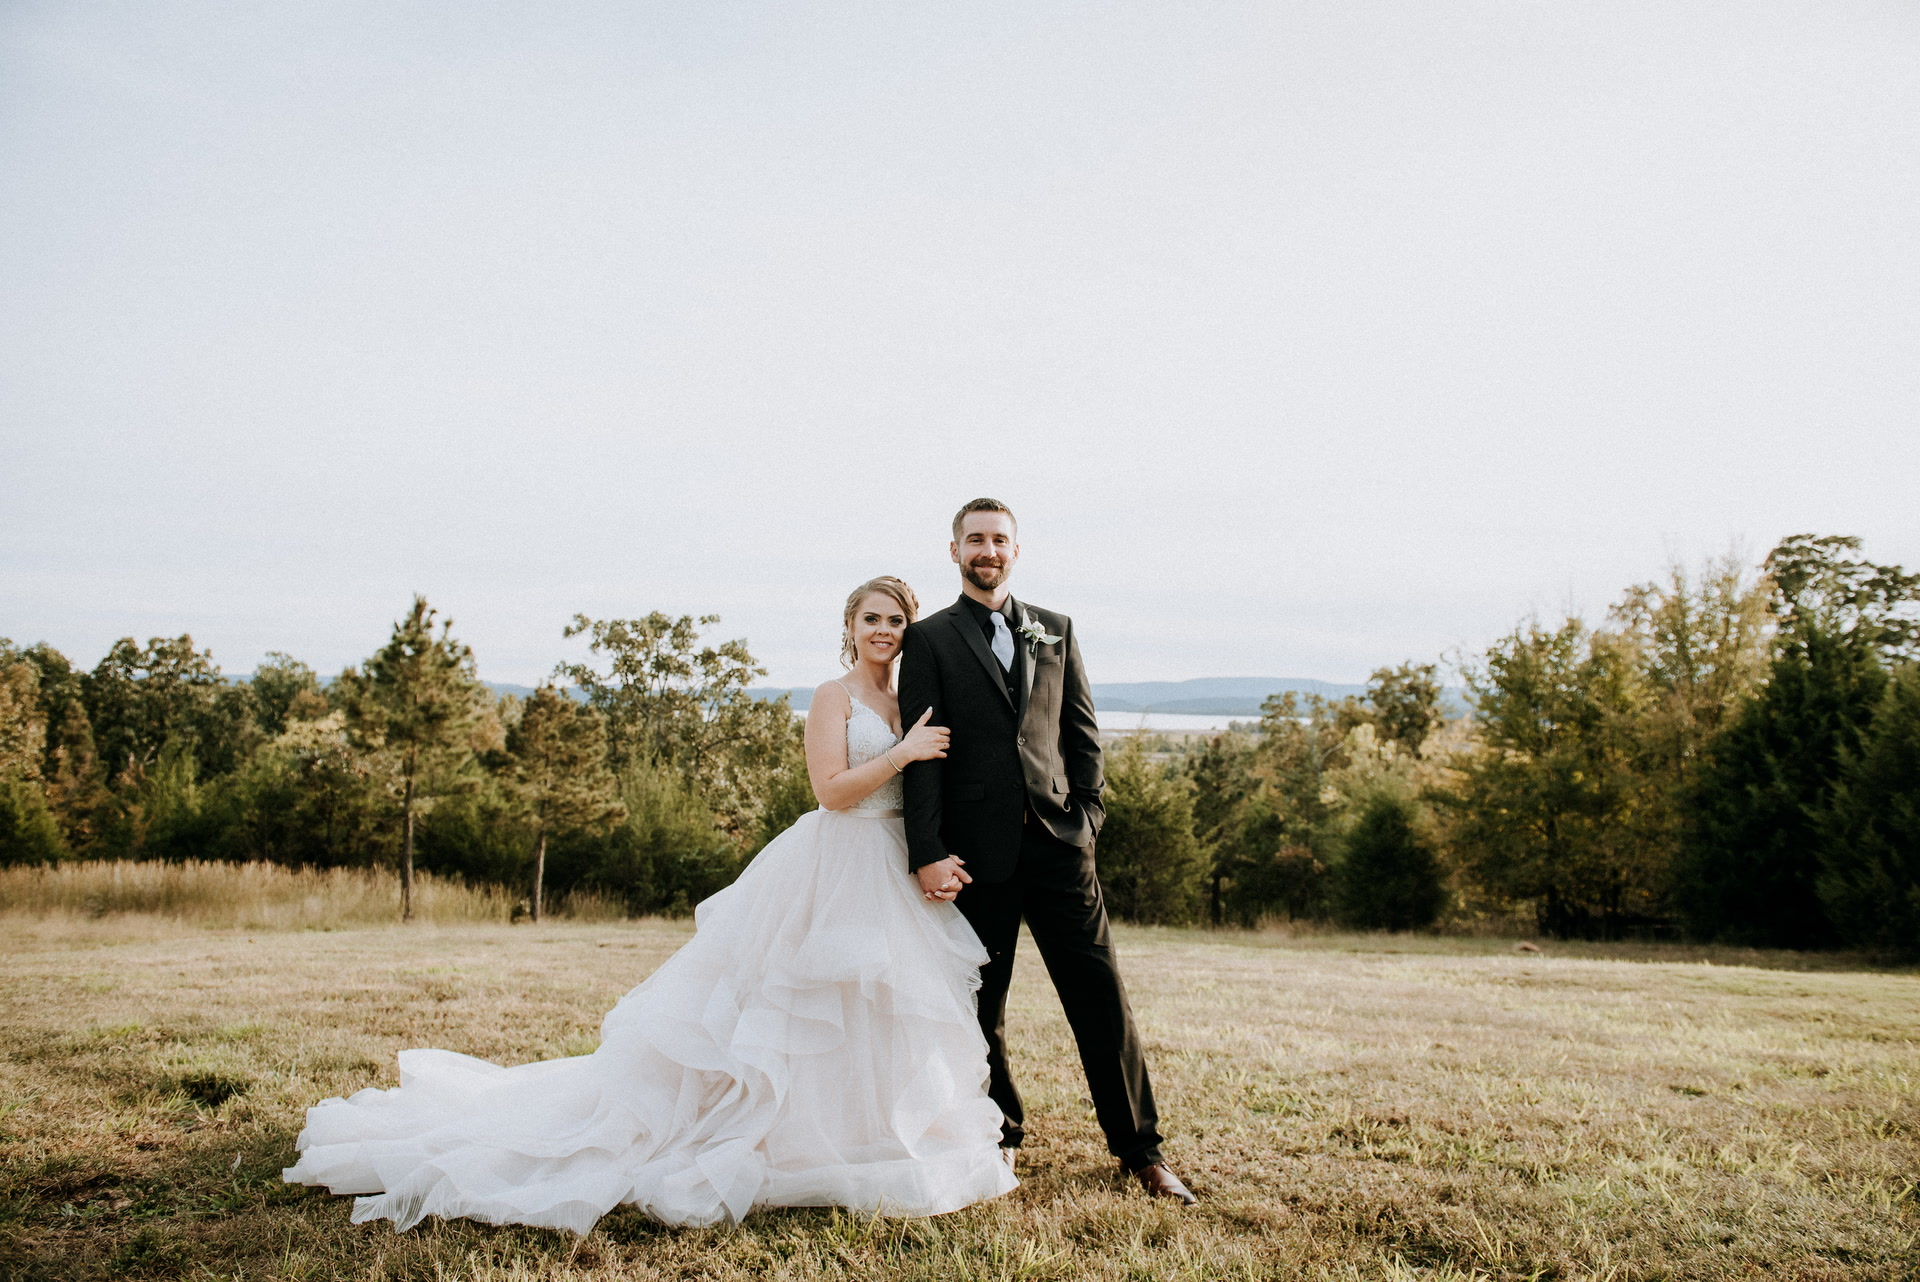 Miranda + David | Lamar, Arkansas | Cabin creek lookout